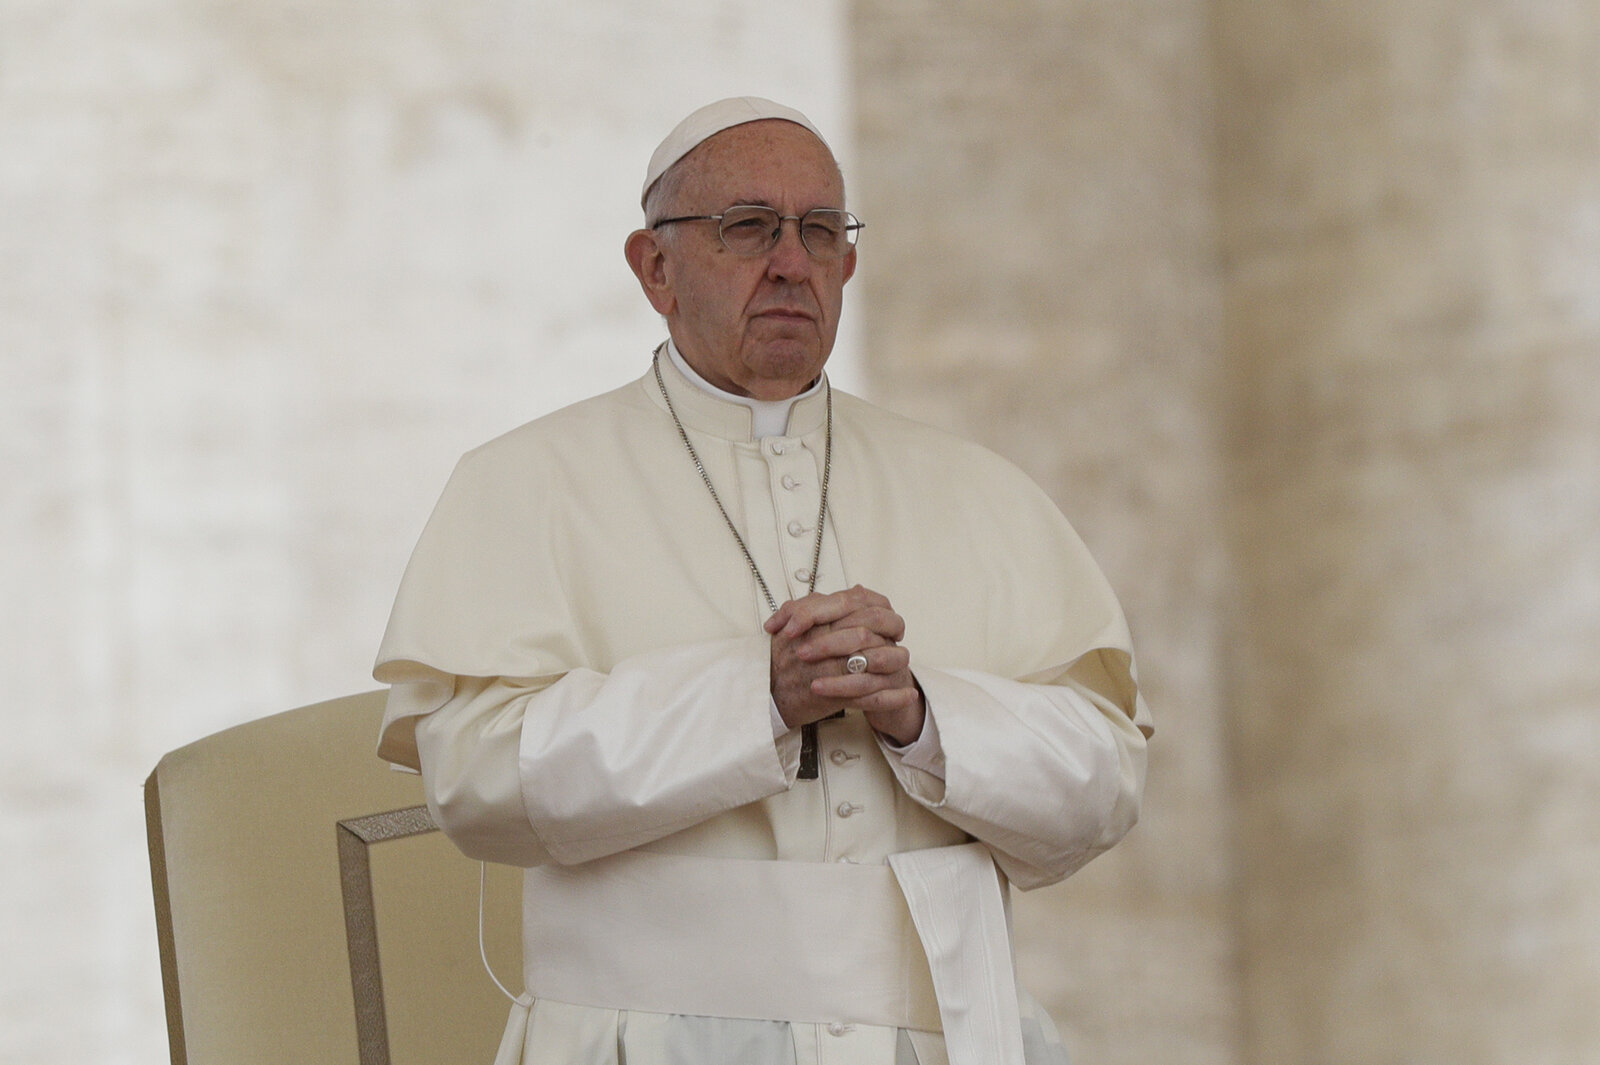 Another Bad Move By the Catholic Church; Pope approves church policy change saying death penalty is always wrong